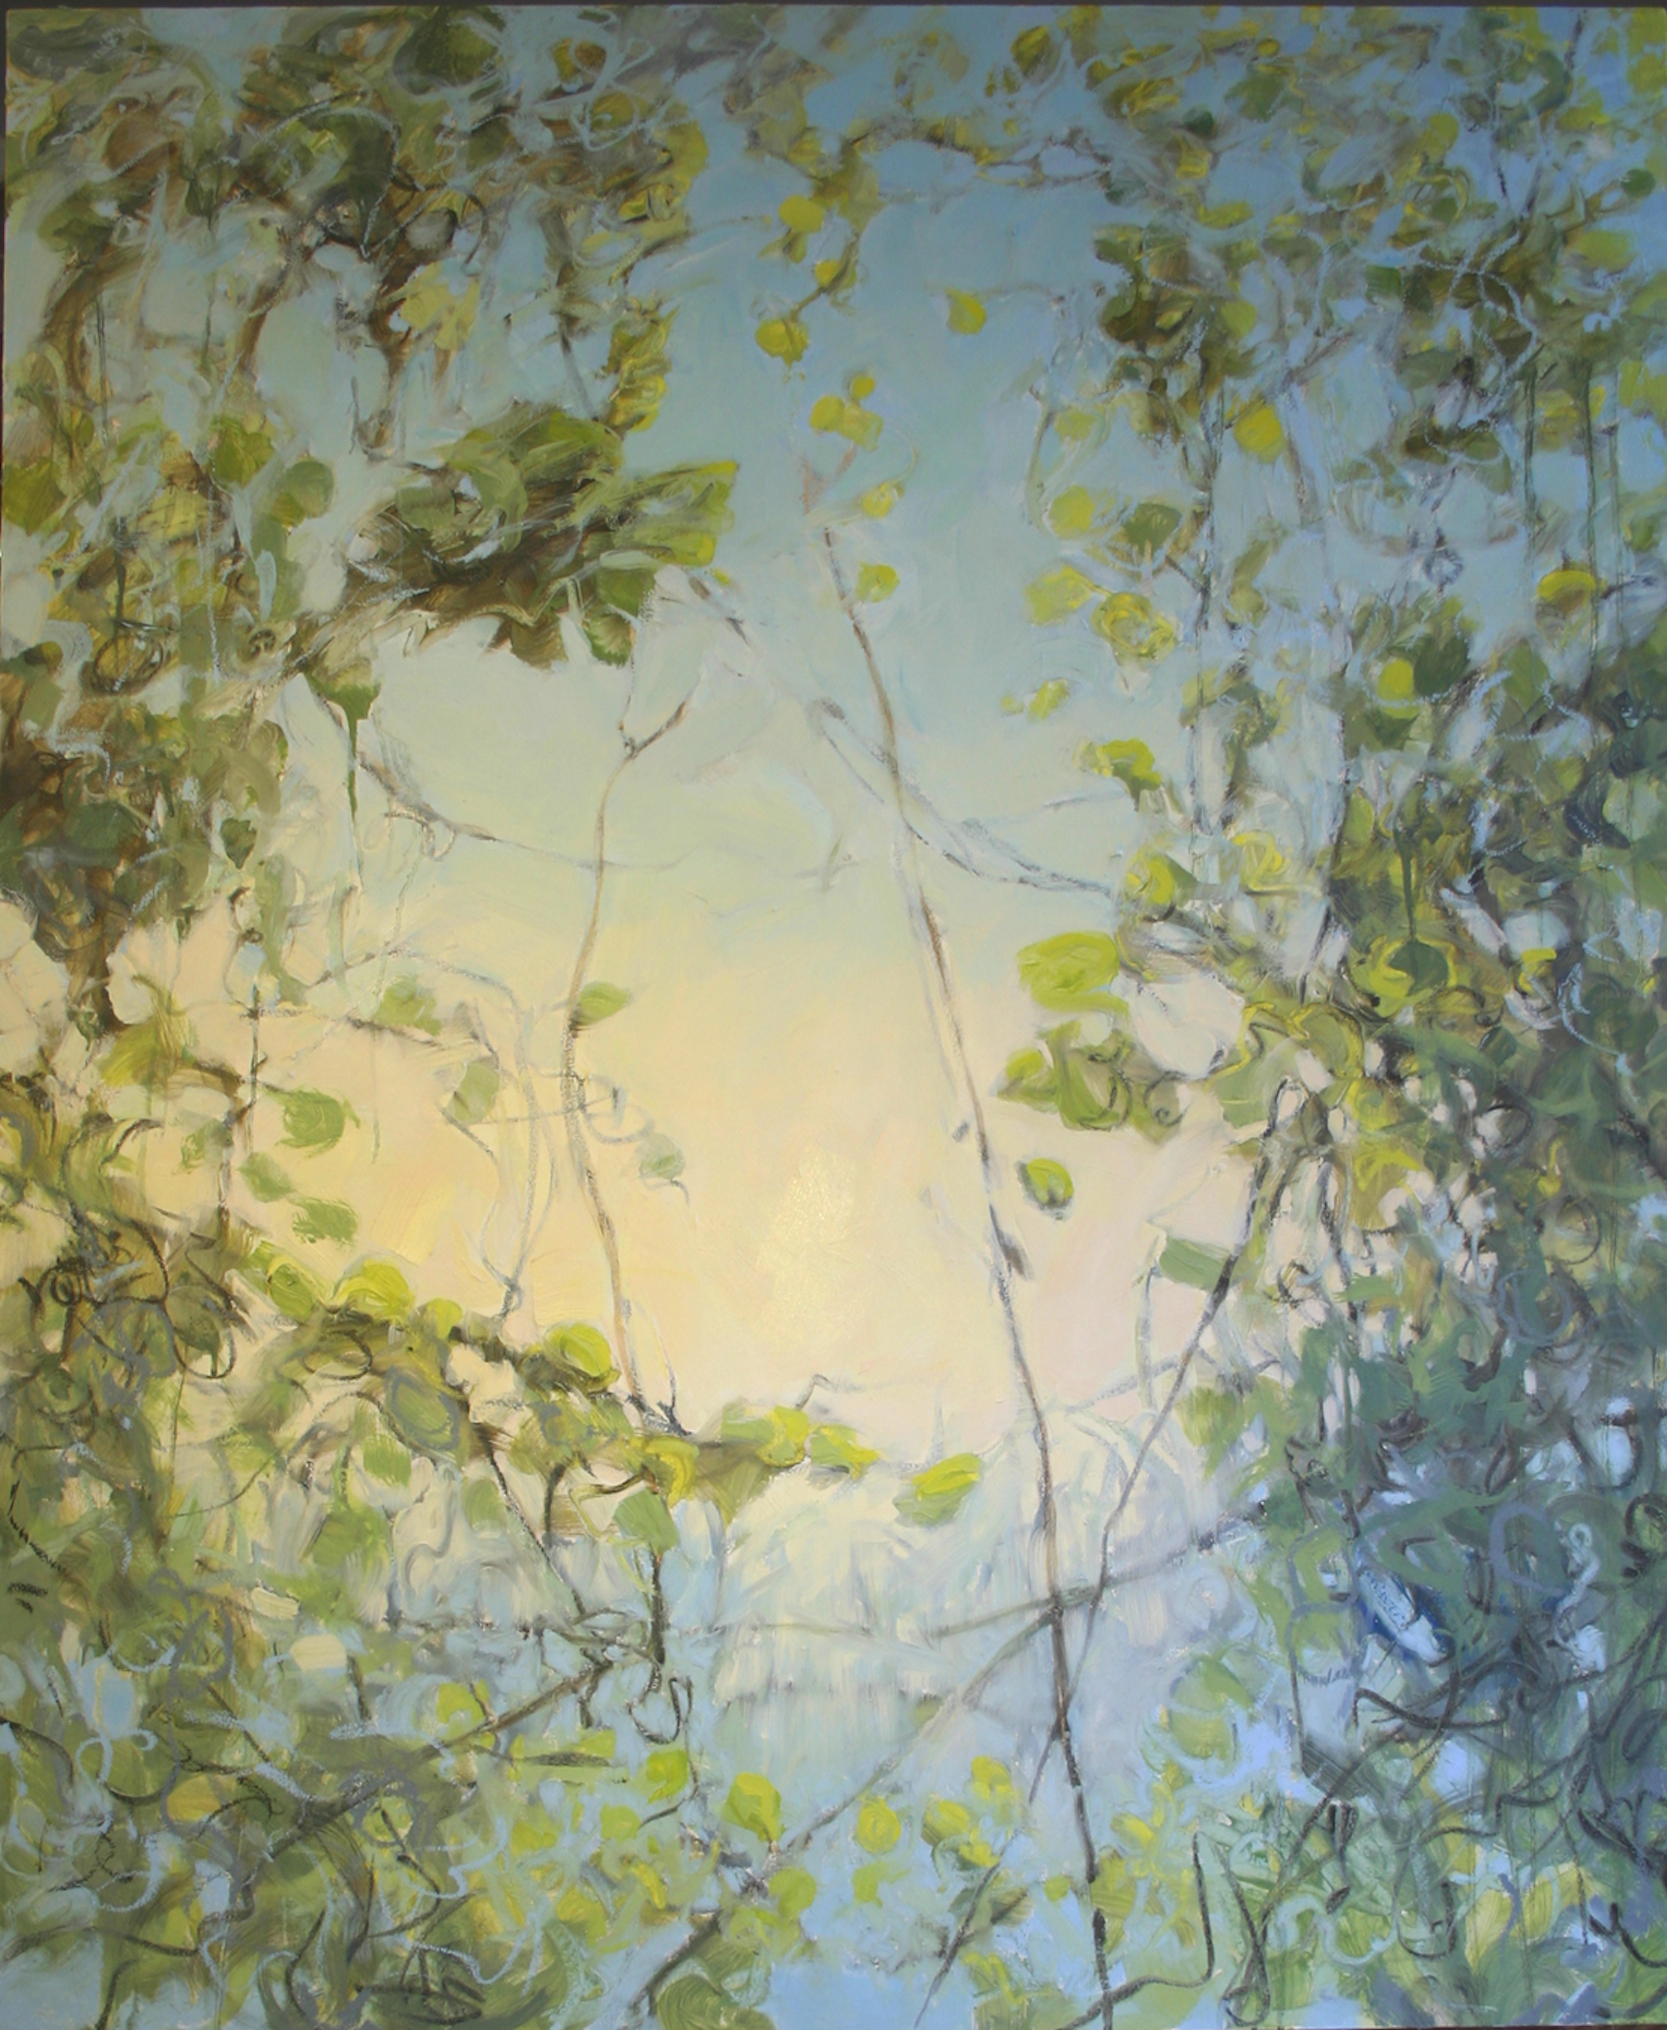 """Sky Vines, Jamie Young, 2012, 72 x 60"""" Oil on canvas"""